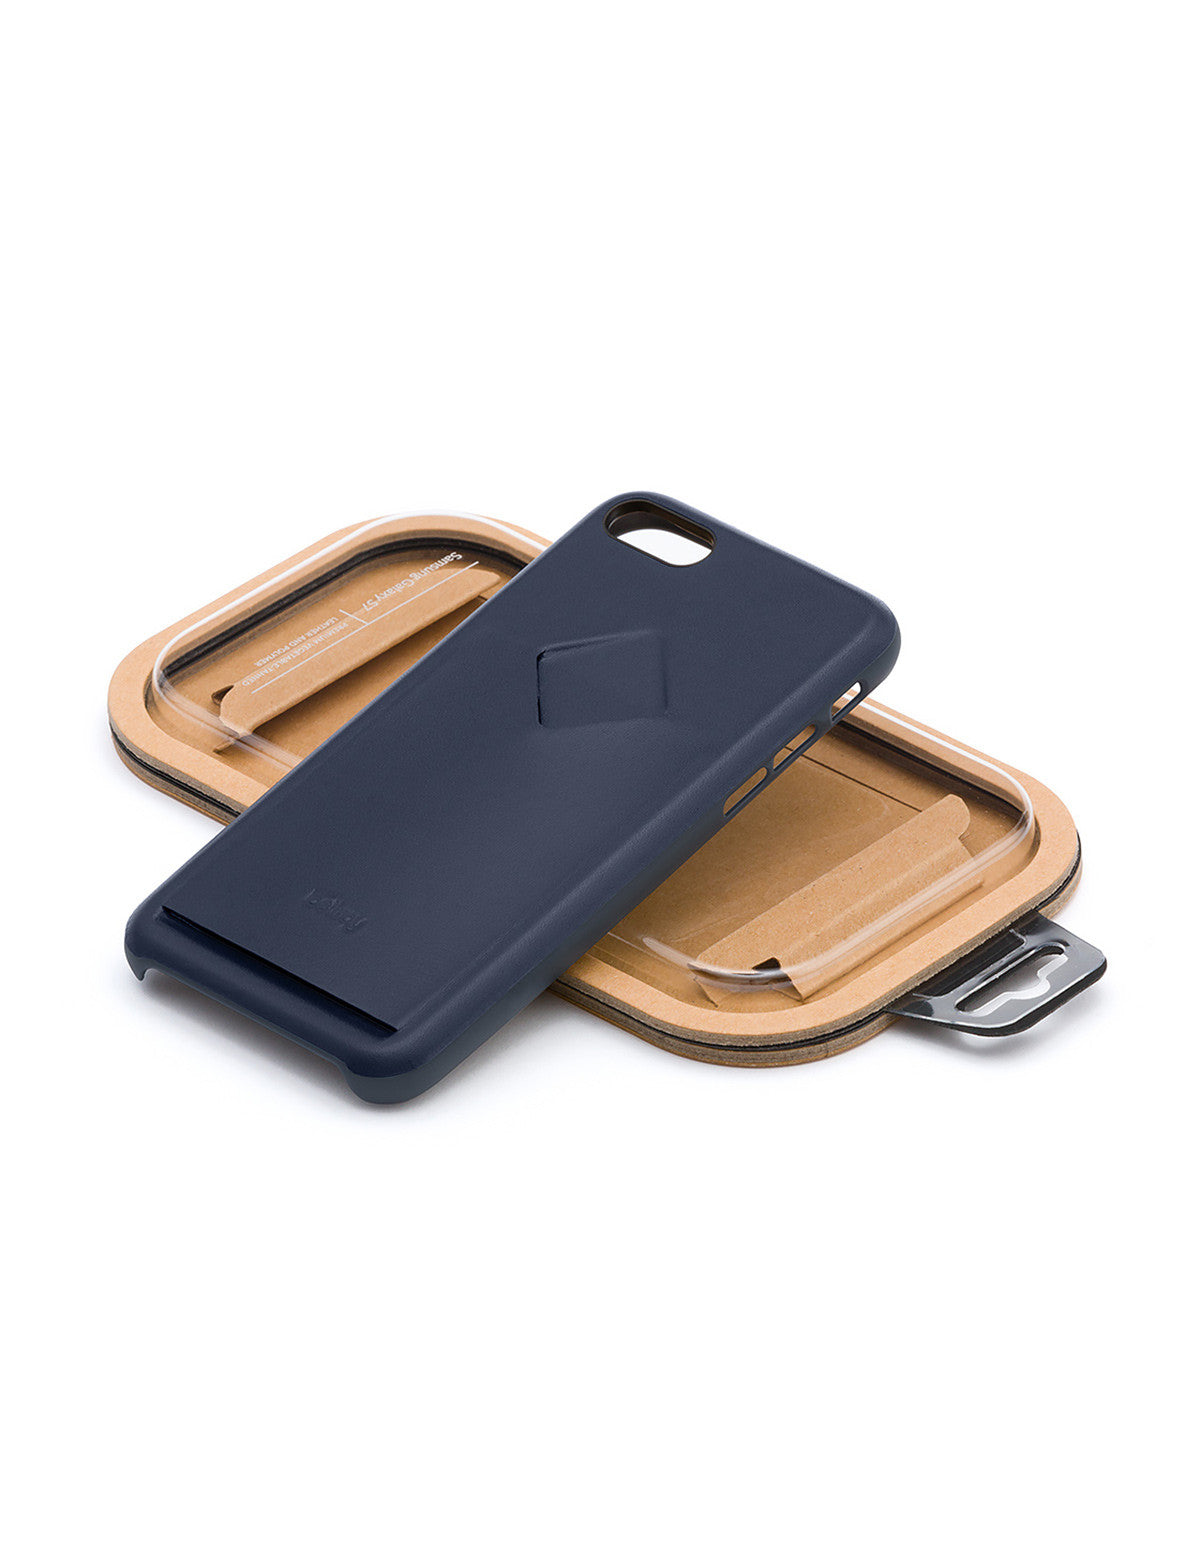 Bellroy Phone Case i7 1 Card Blue Steel - Still Life - 4